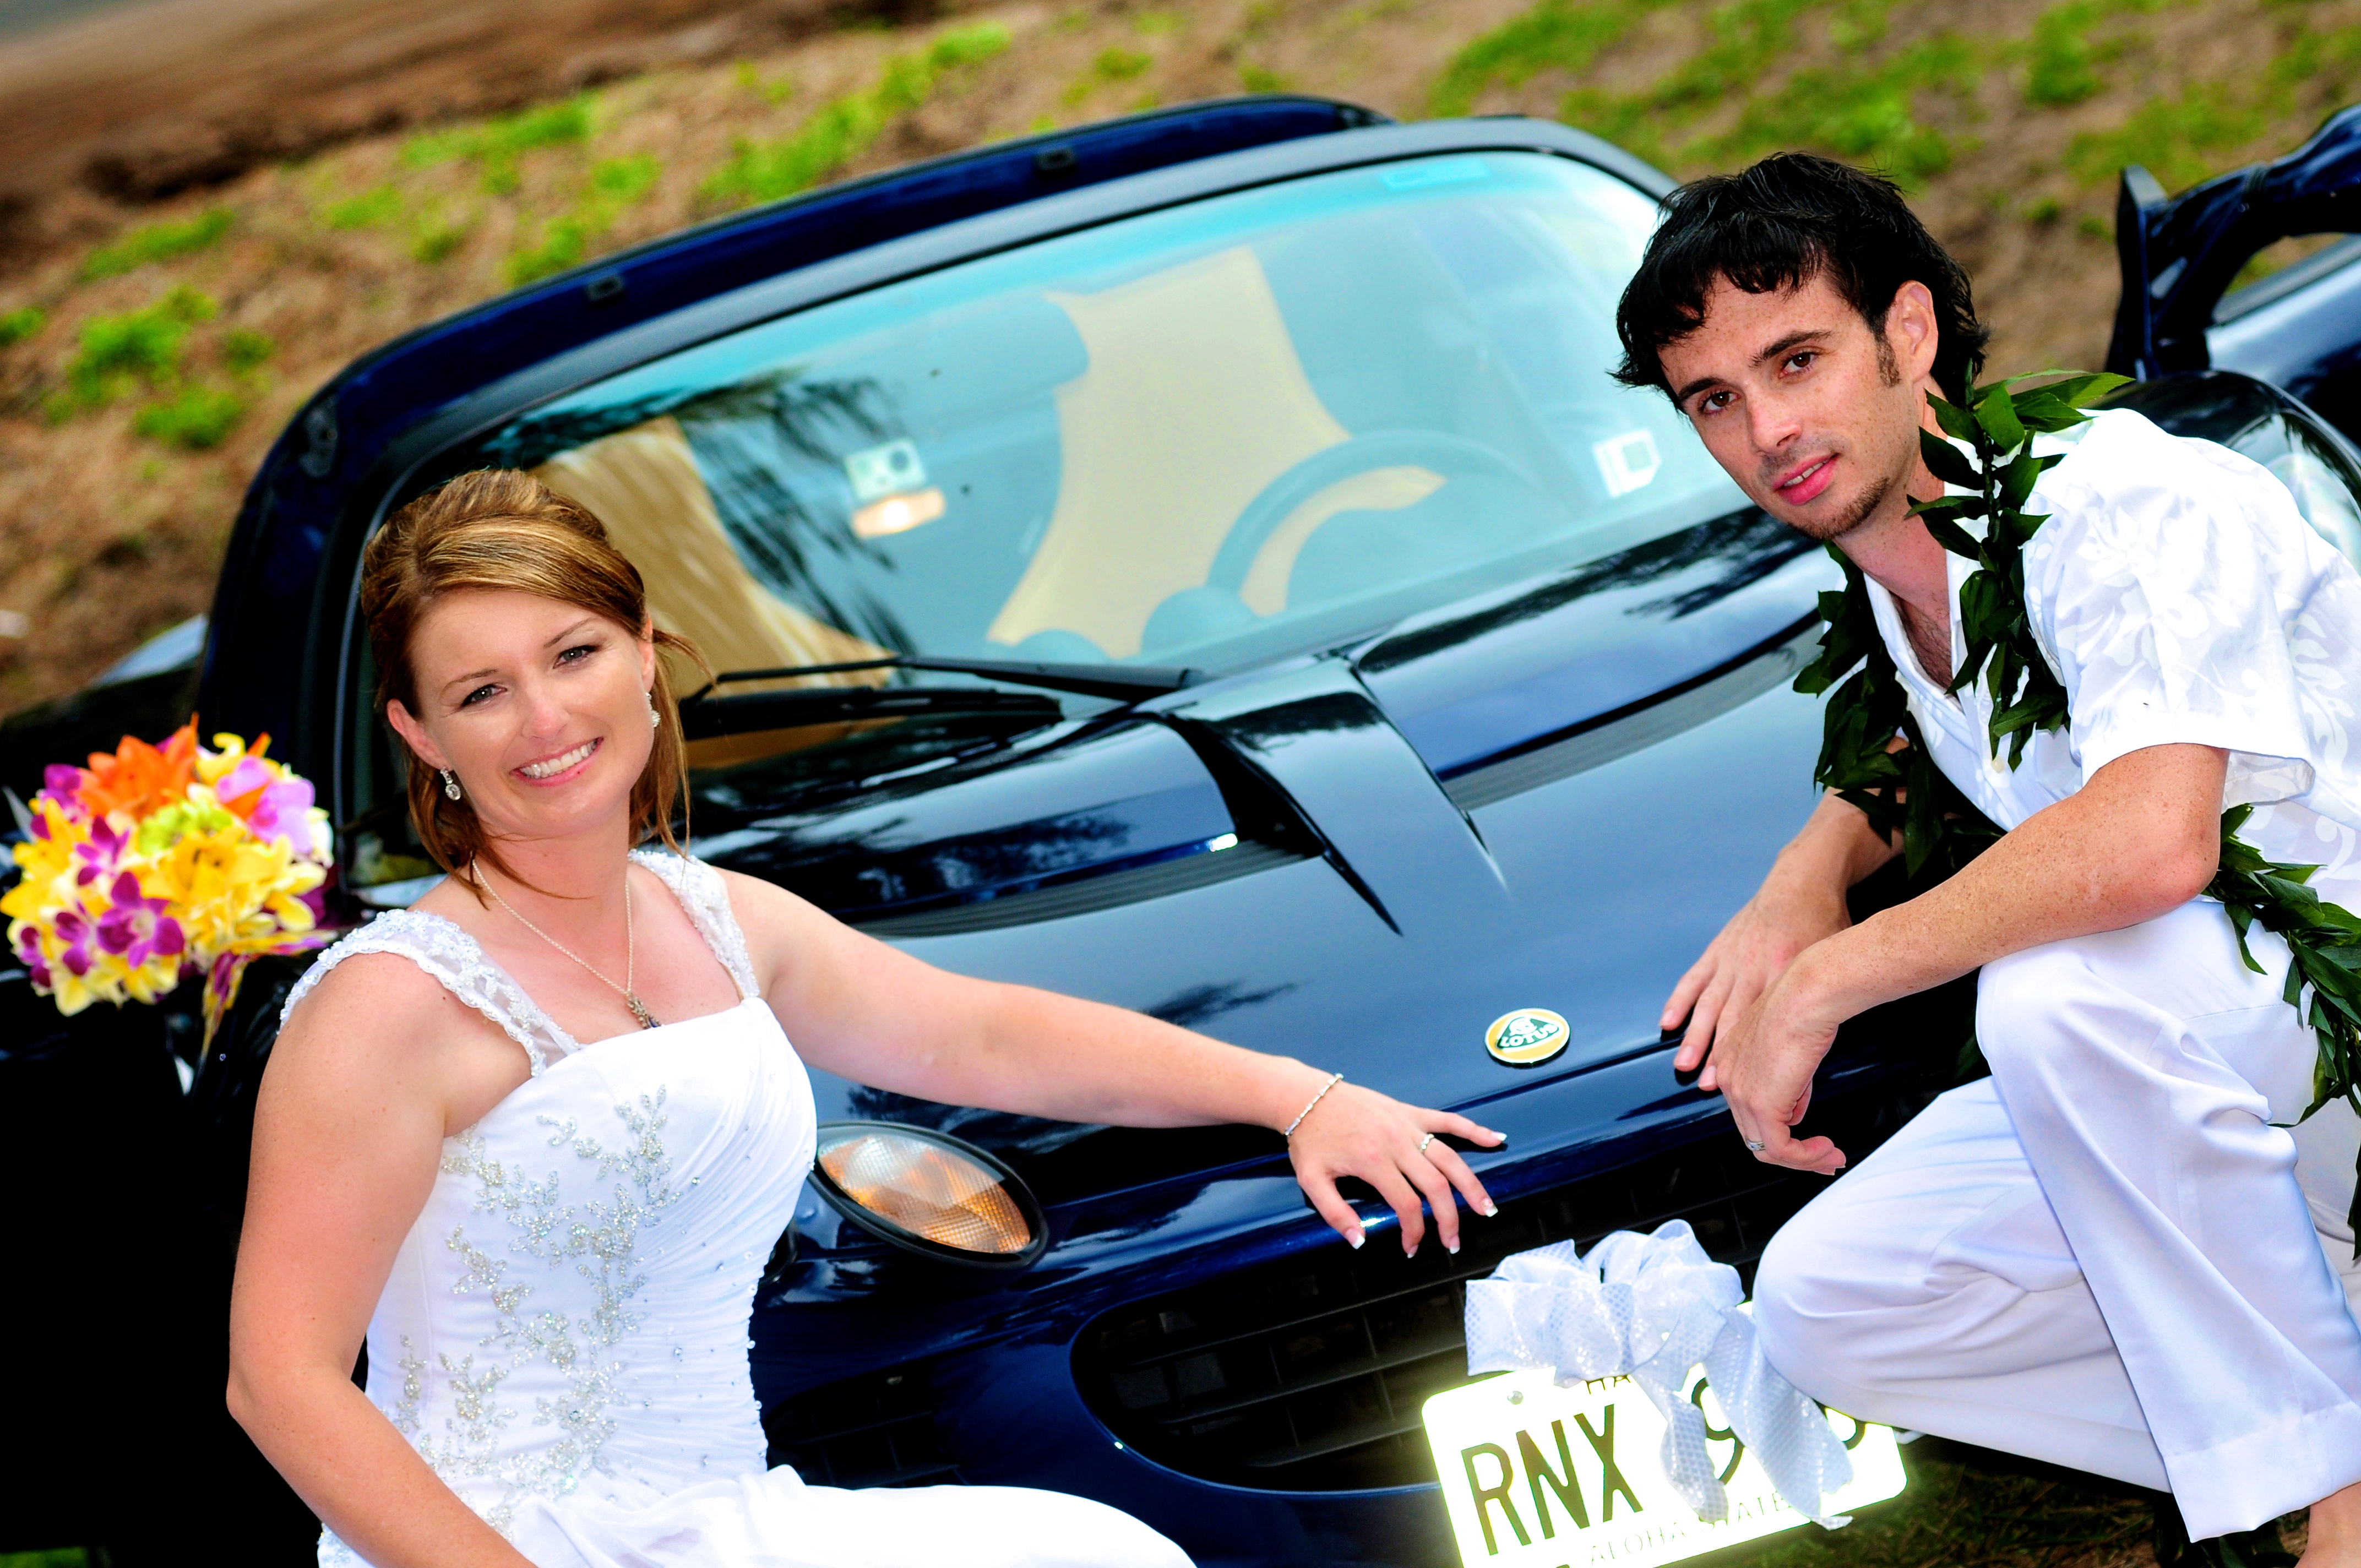 alohaislandweddings- Lotus car -30